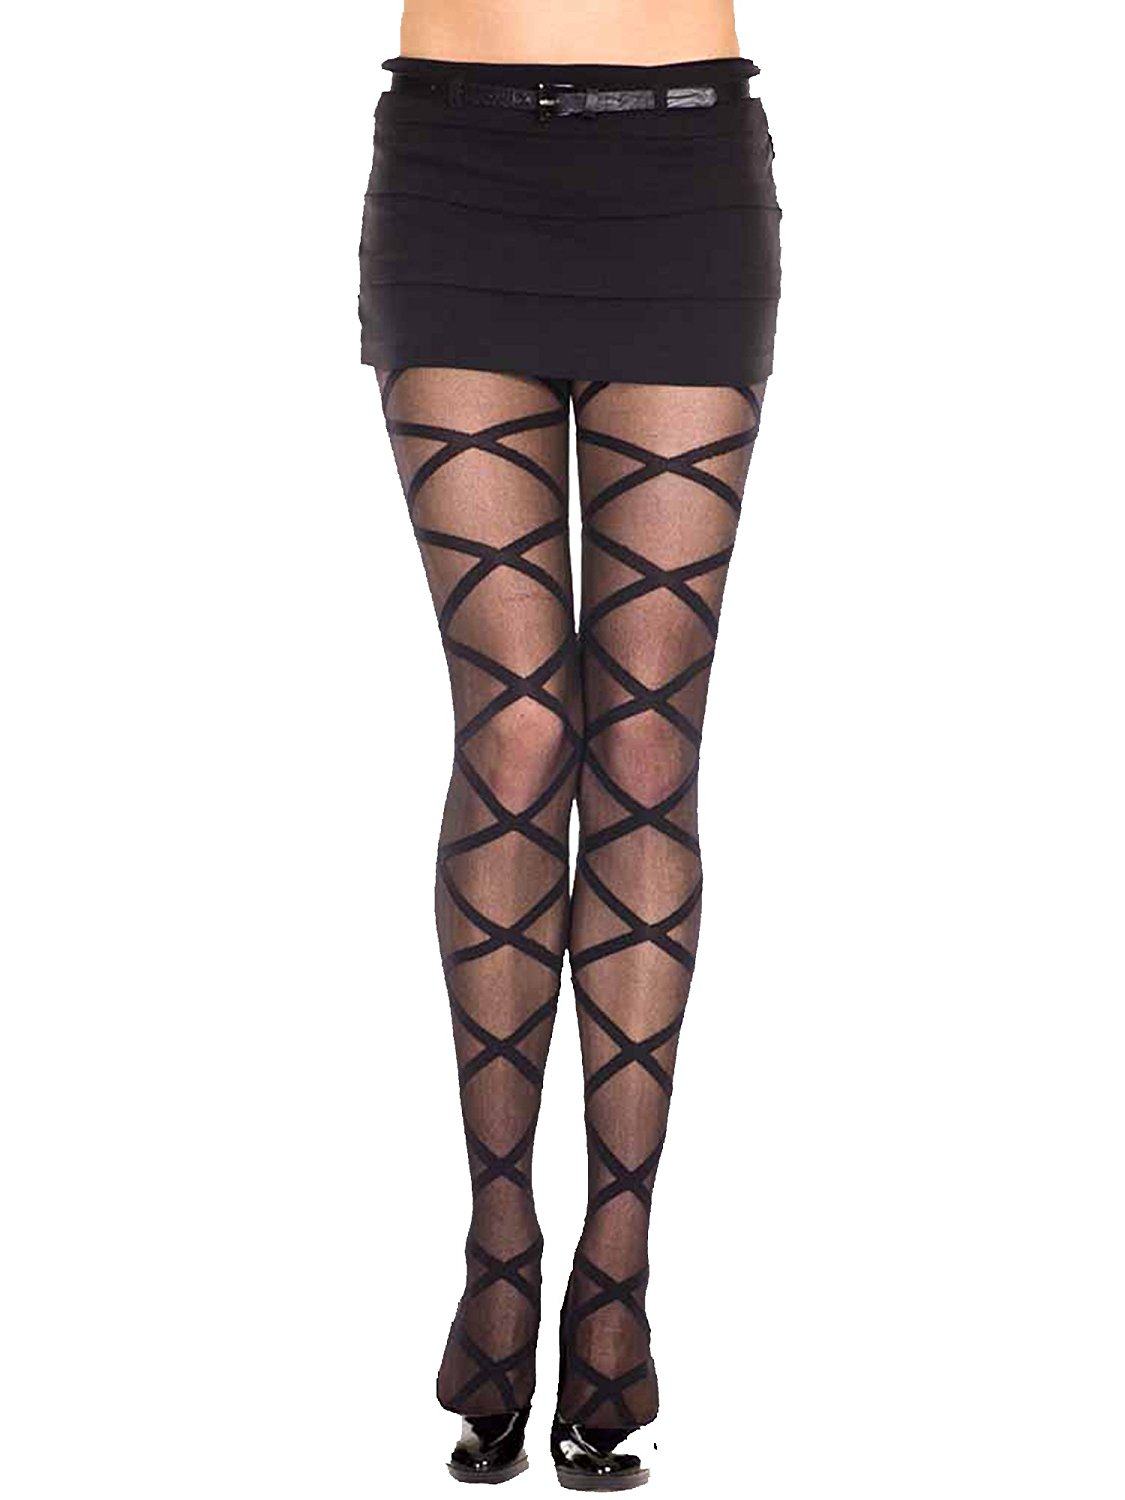 ca568839149b8 Buy Luxury Divas Black Spandex Sheer Tights With Woven Floral Design ...